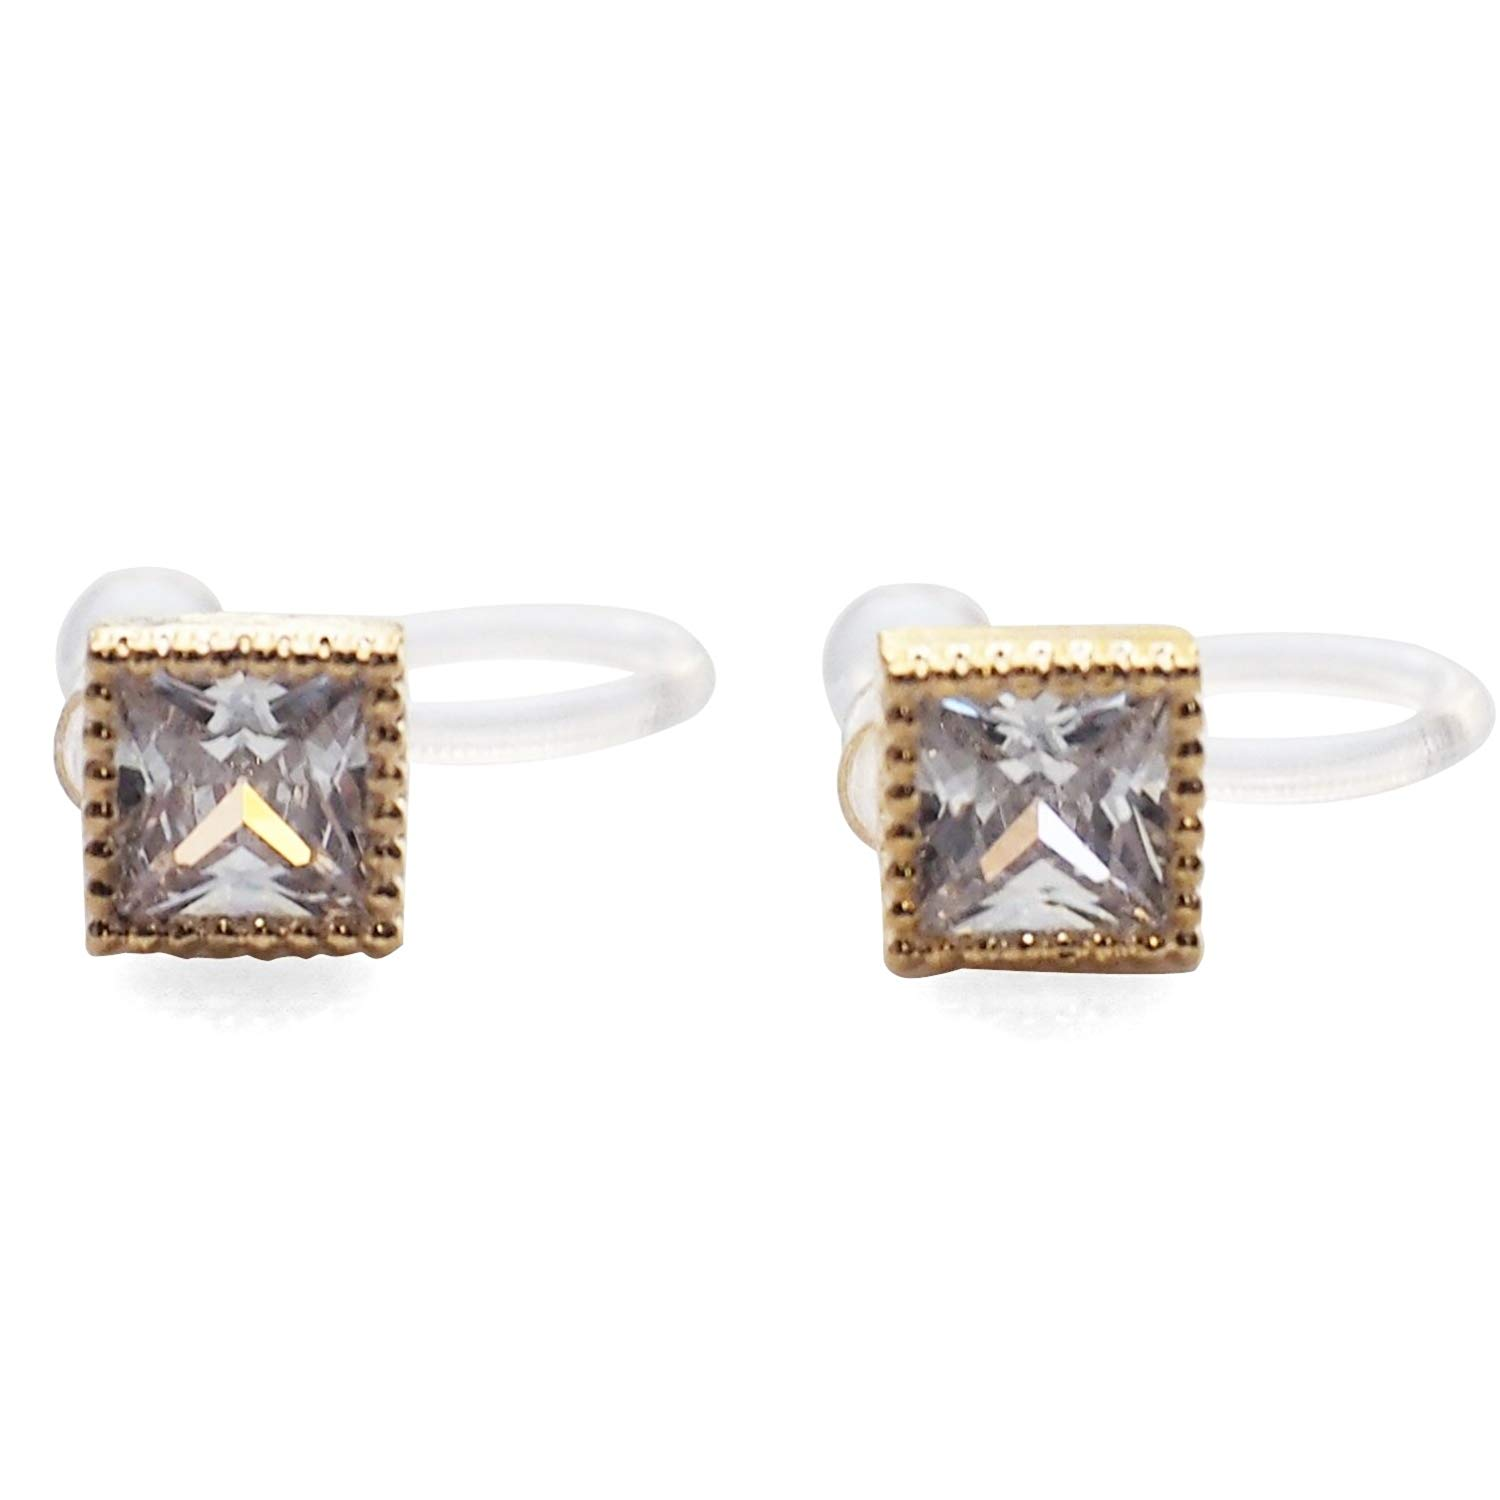 Miyabi Grace Women's Square Minimalist Comfortable Simple Cubic Zirconia Crystal Invisible Clip On Stud Earrings Gold tone